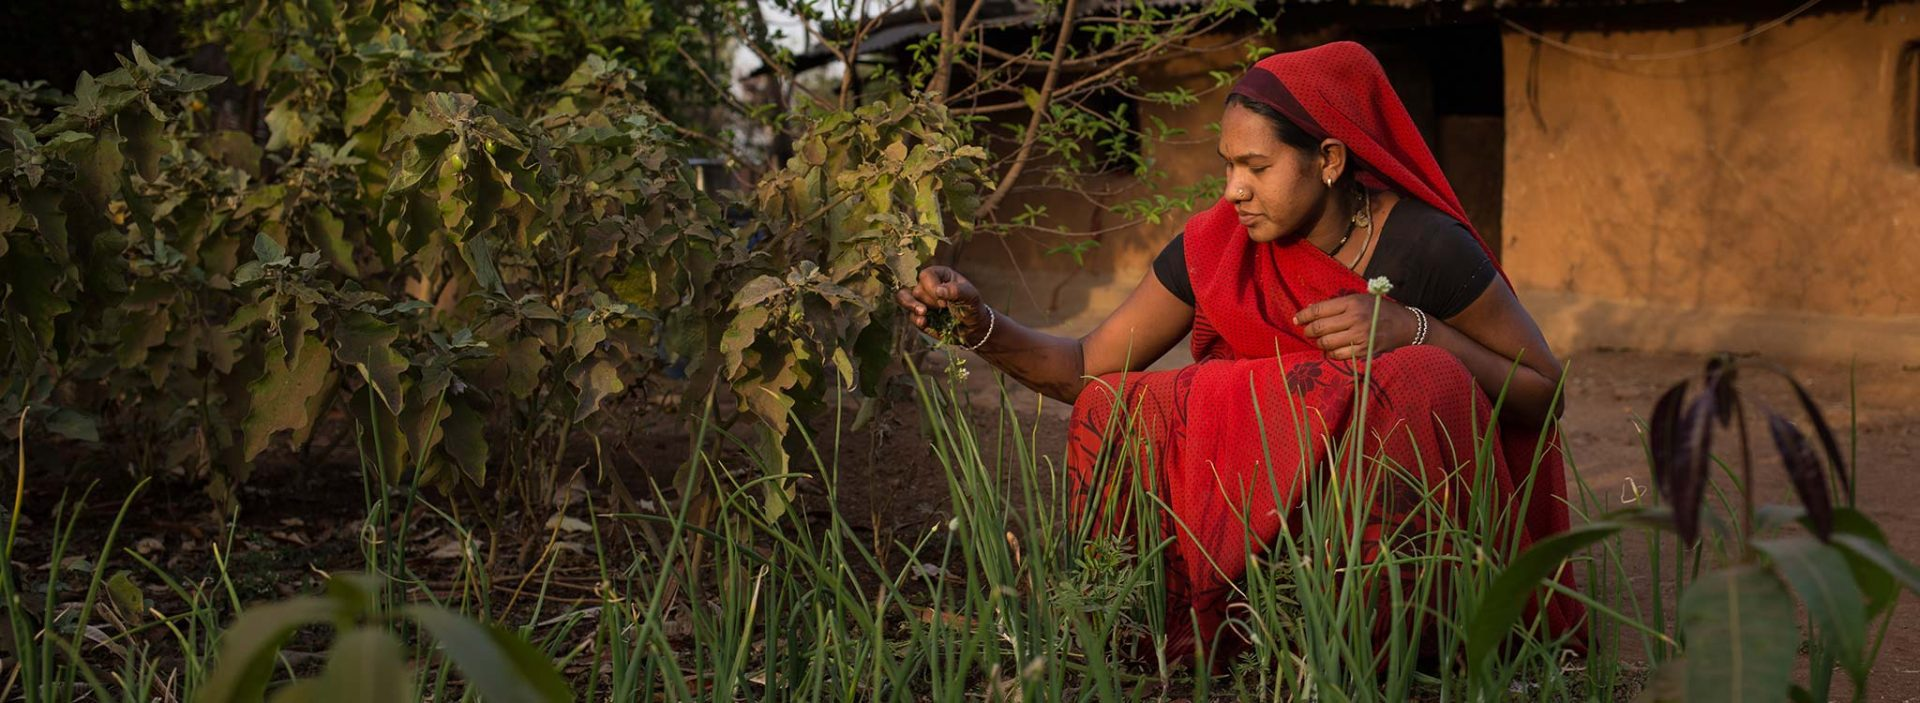 A woman works in a field in India.